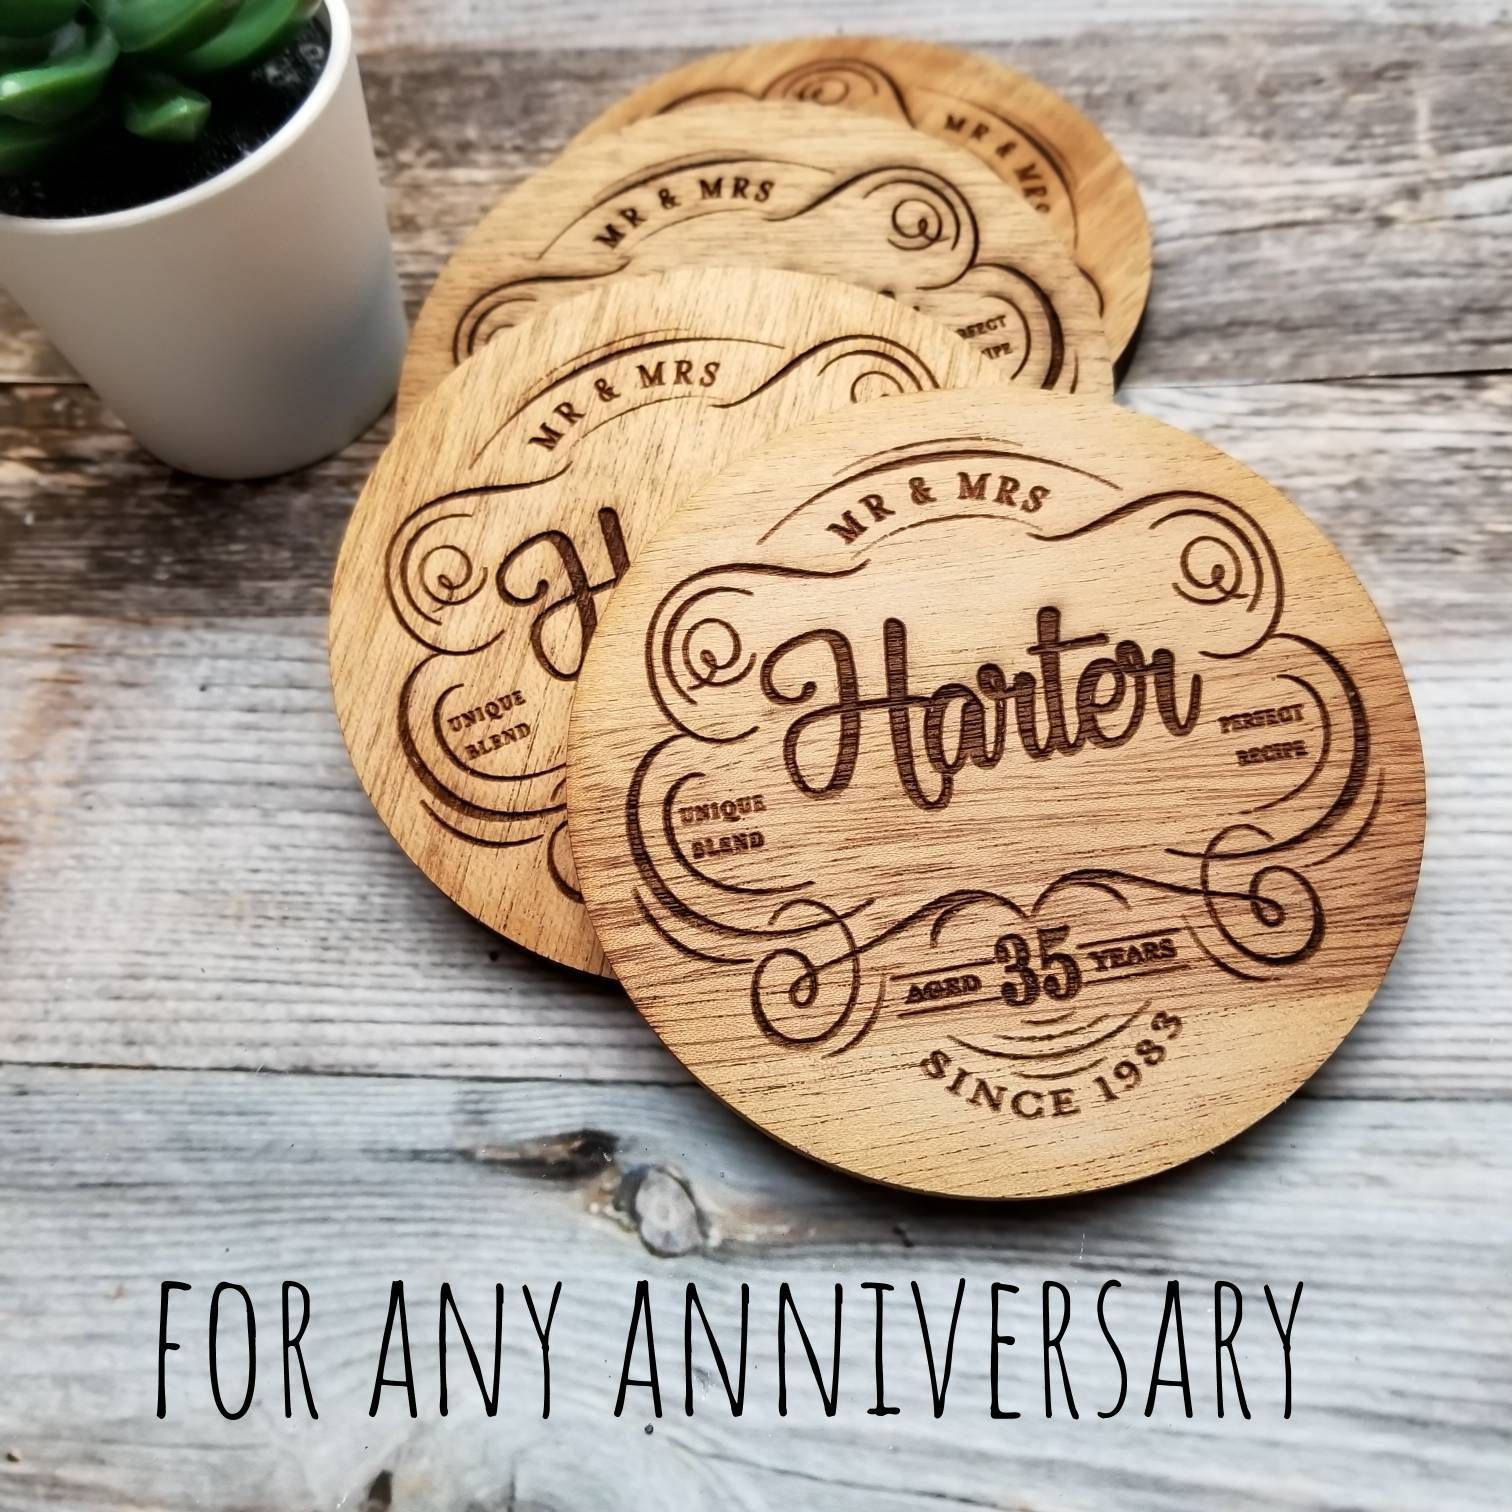 35th Anniversary Gift Personalized Coaster Set, 35 Year